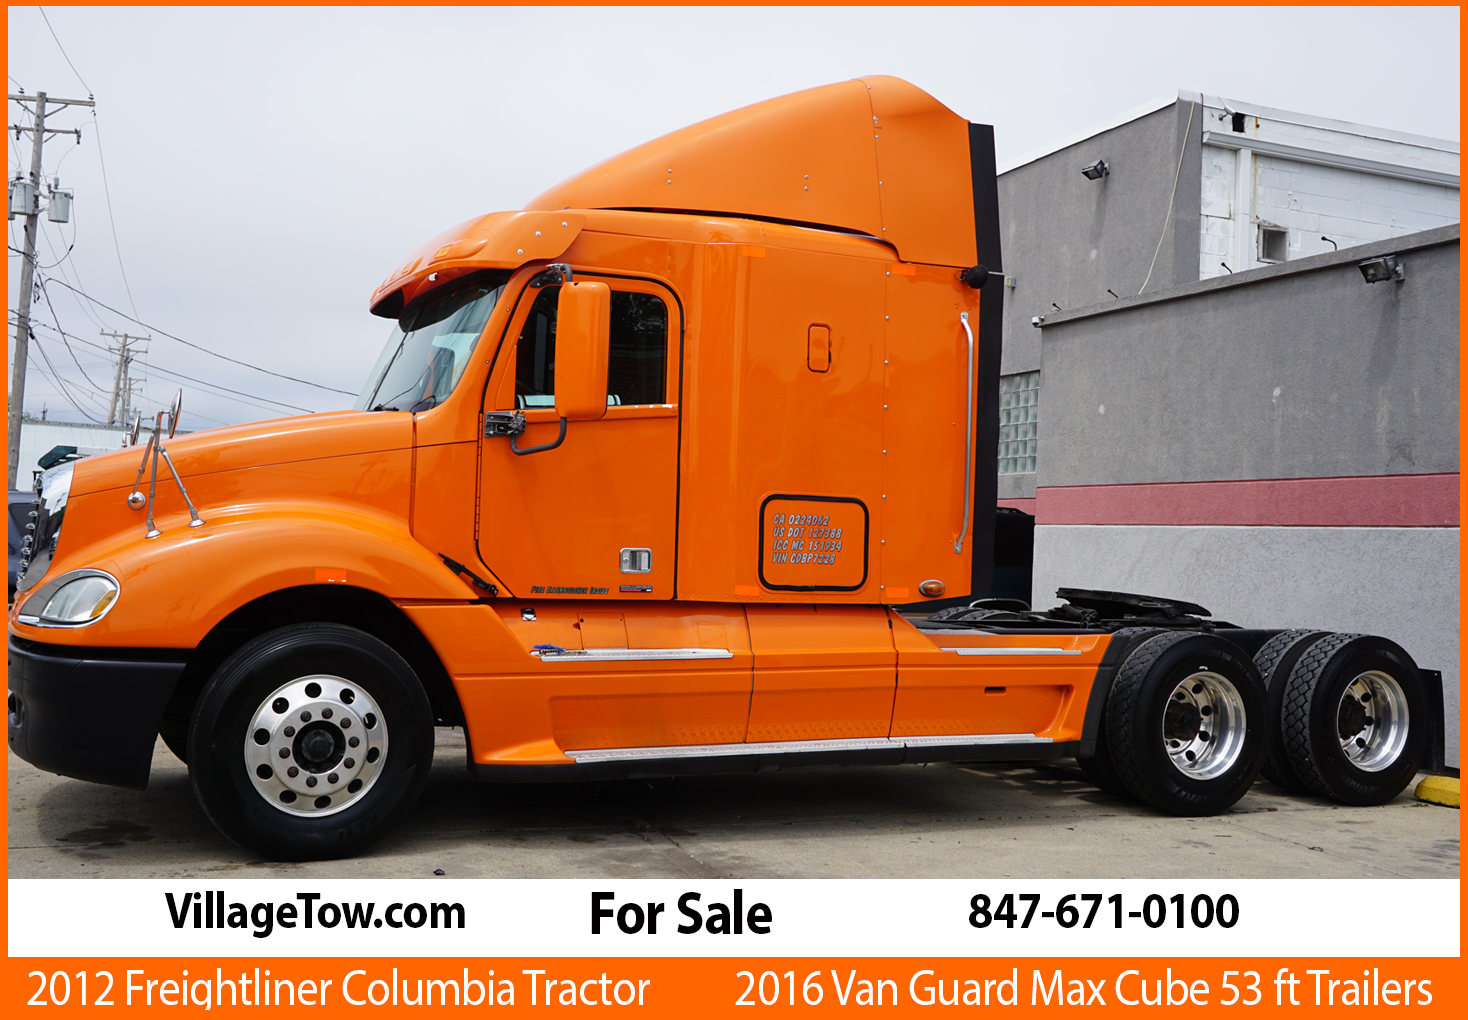 2012 Freightliner Columbia Tractor for Sale